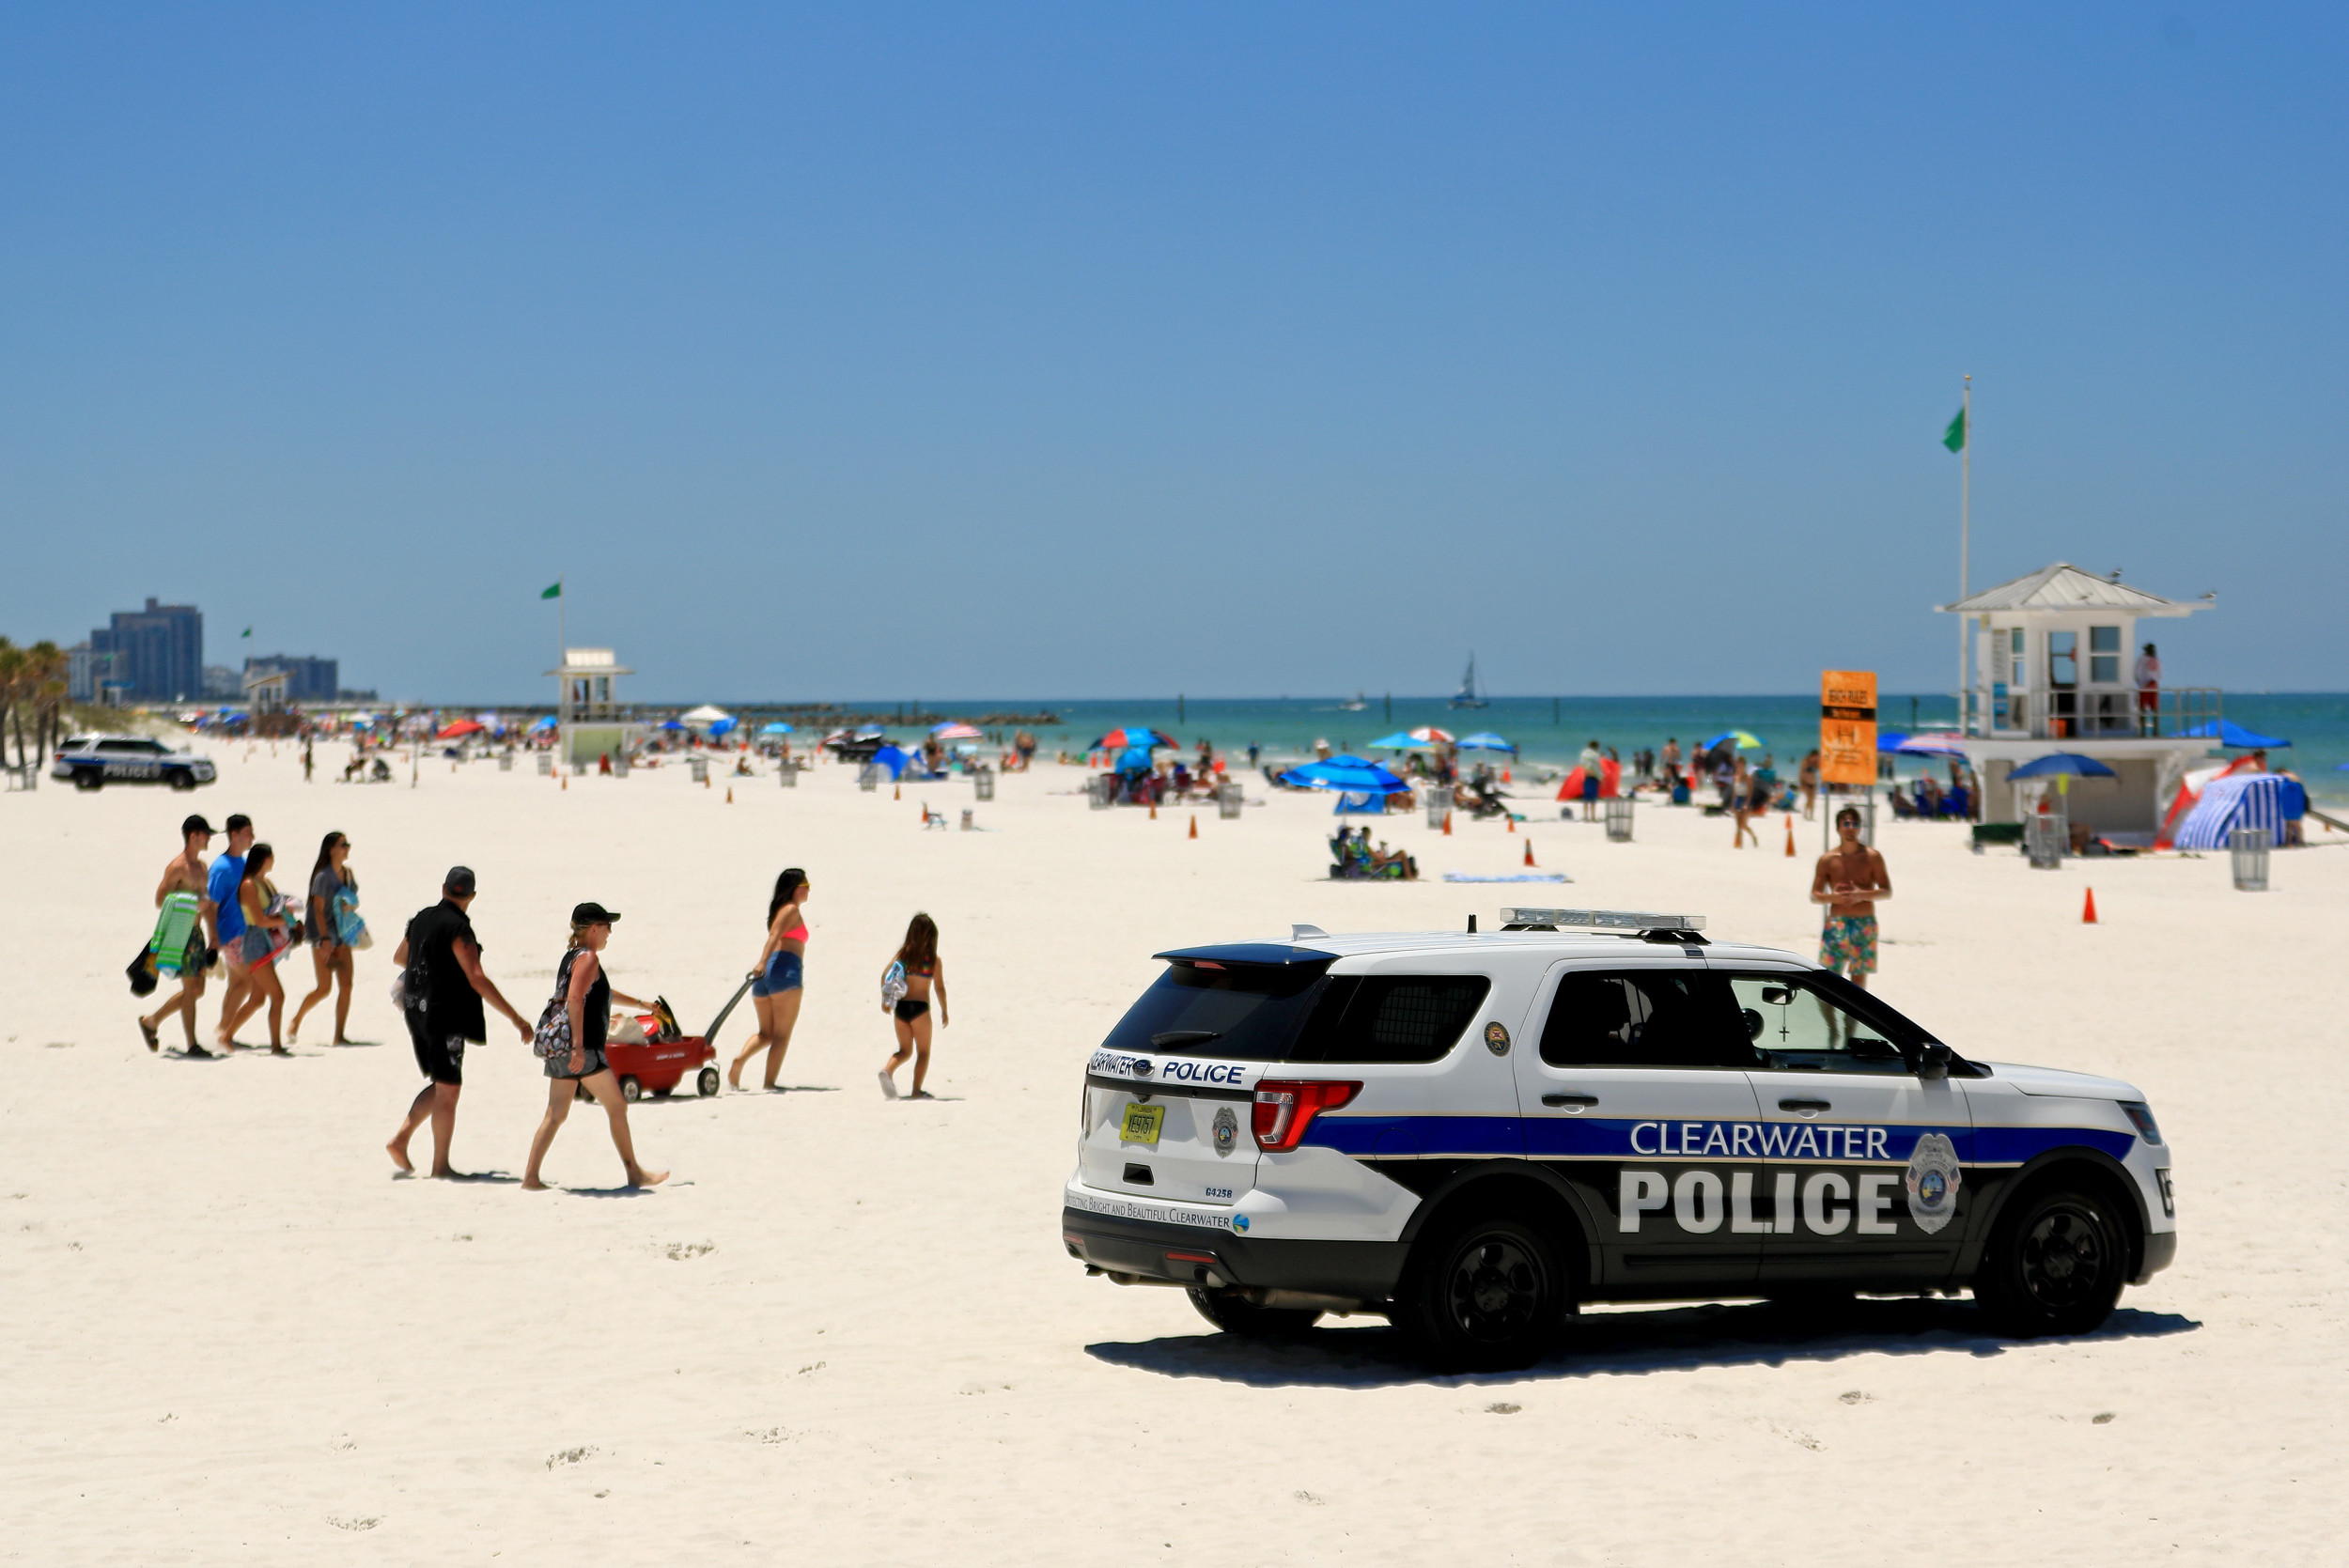 police-car-clearwater-beach-florida-may-2020.jpg